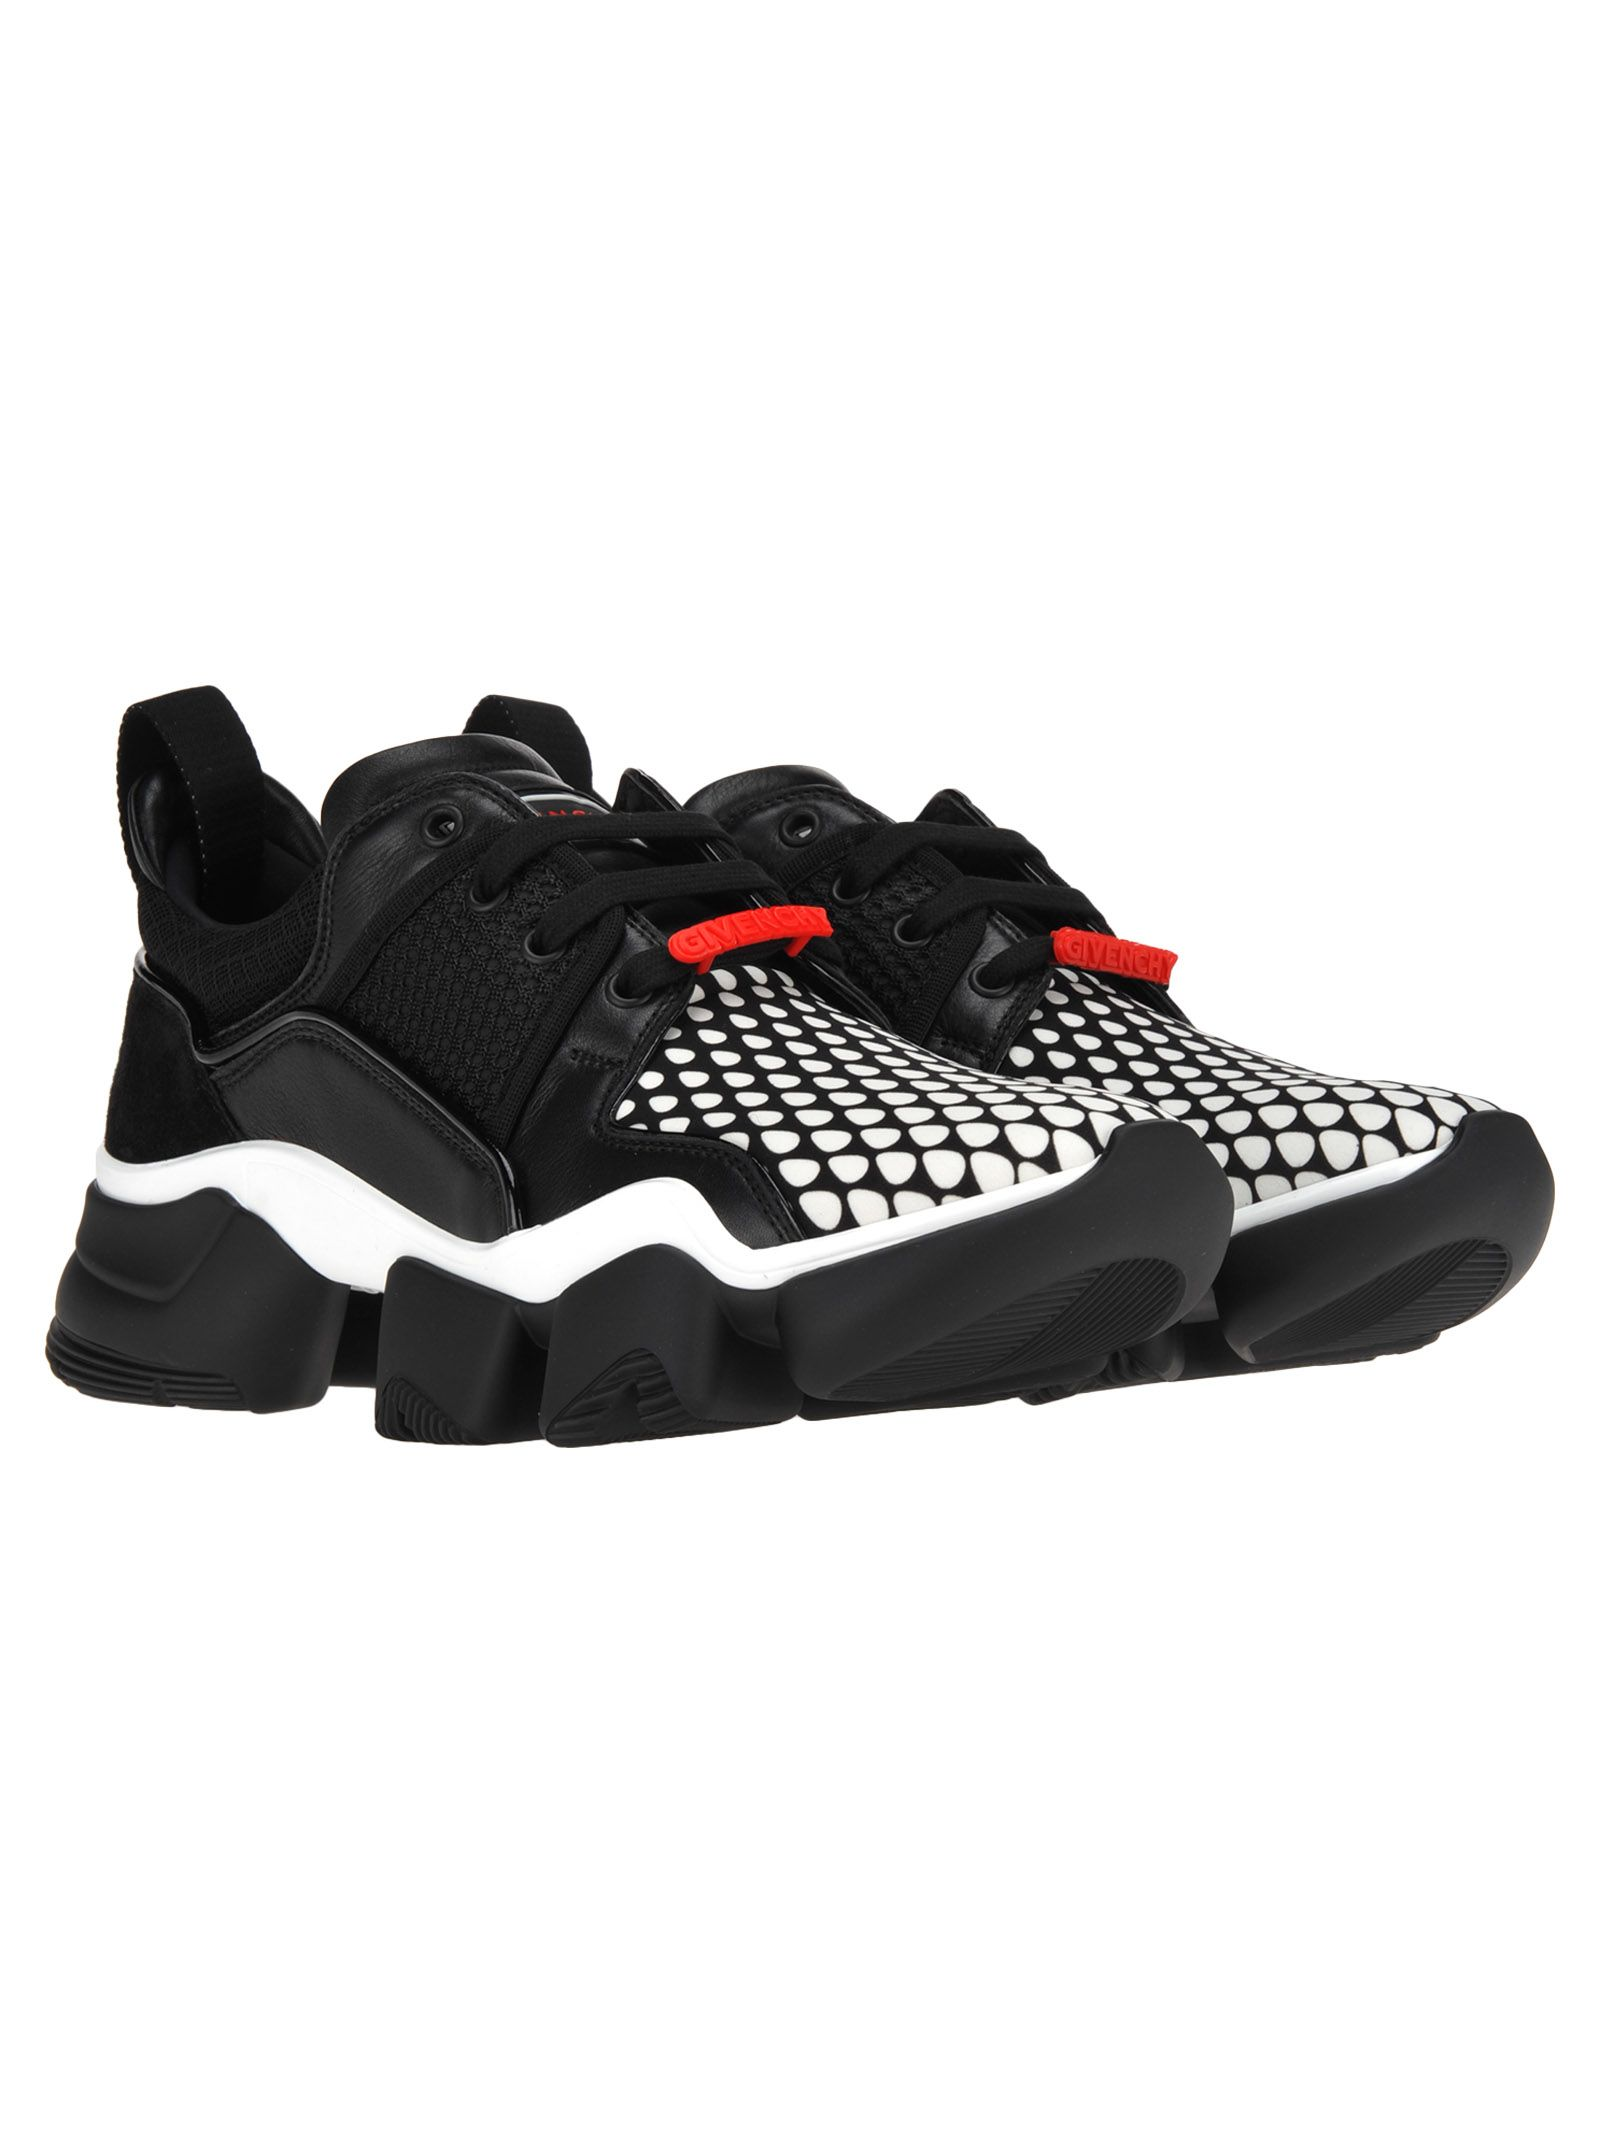 GIVENCHY Platforms Givenchy Givenchy Low Jaw Sneakers